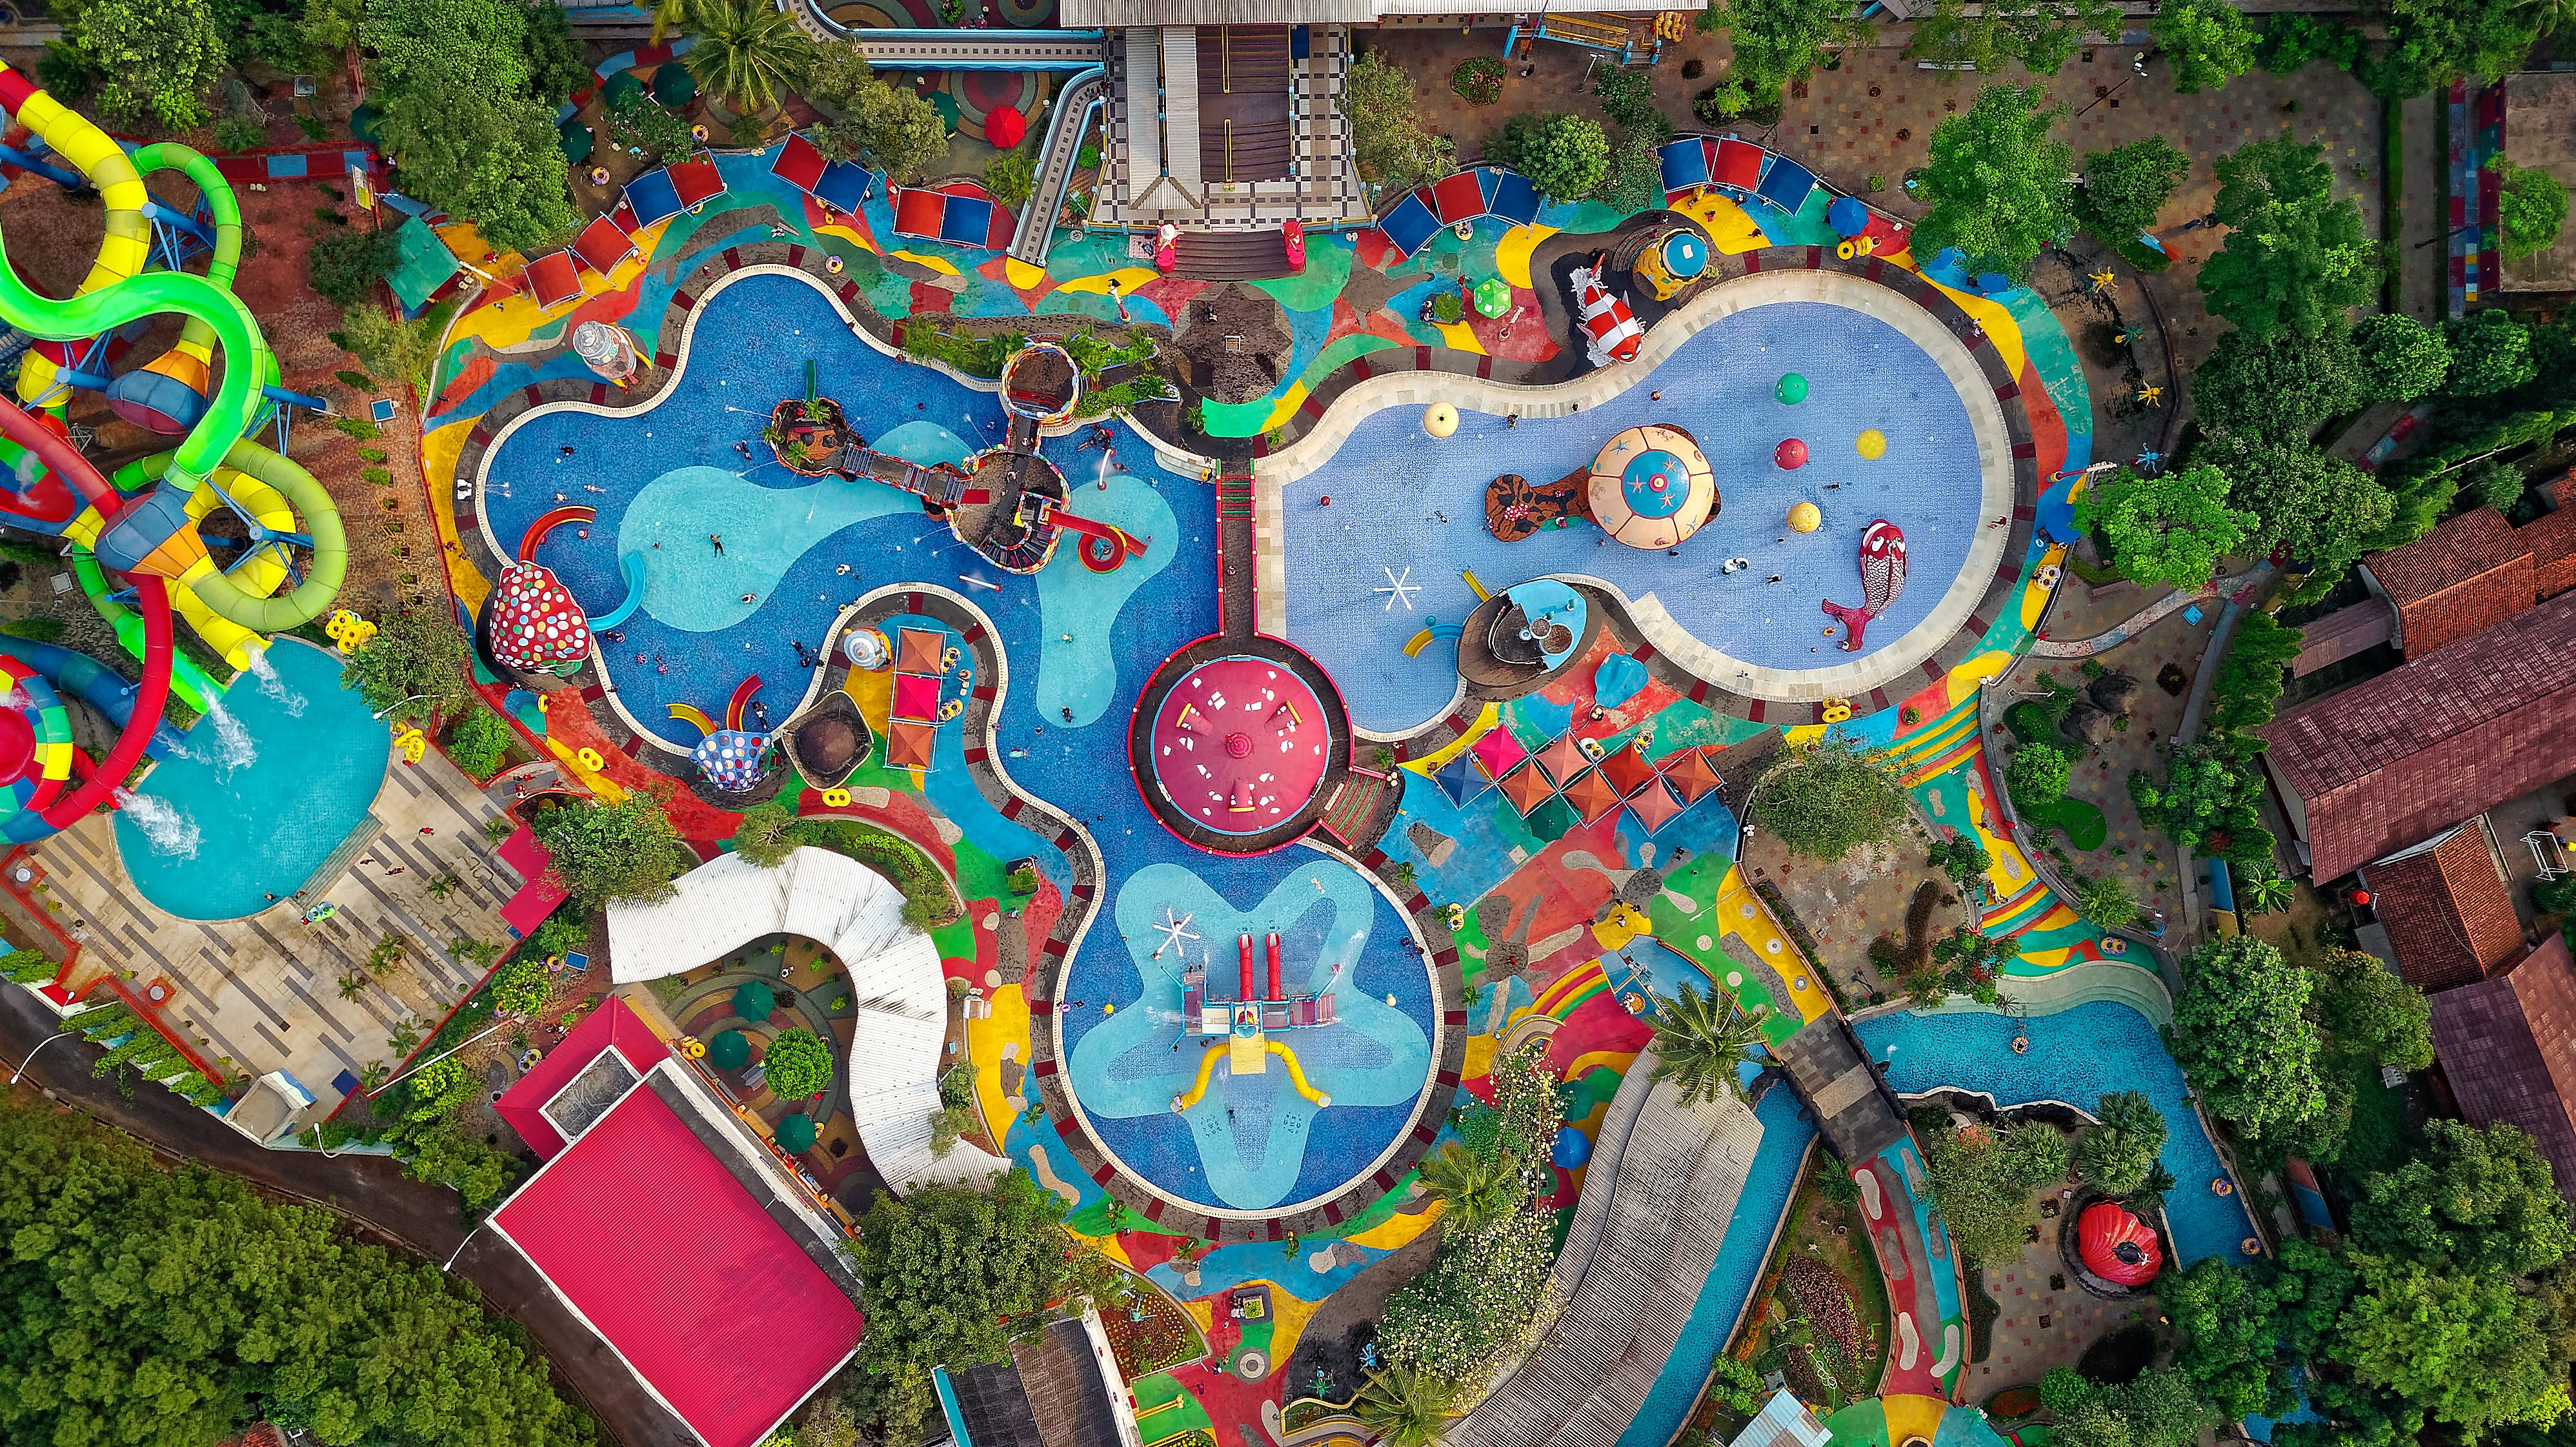 Bird's-eye View of Swimming Pool and Slides